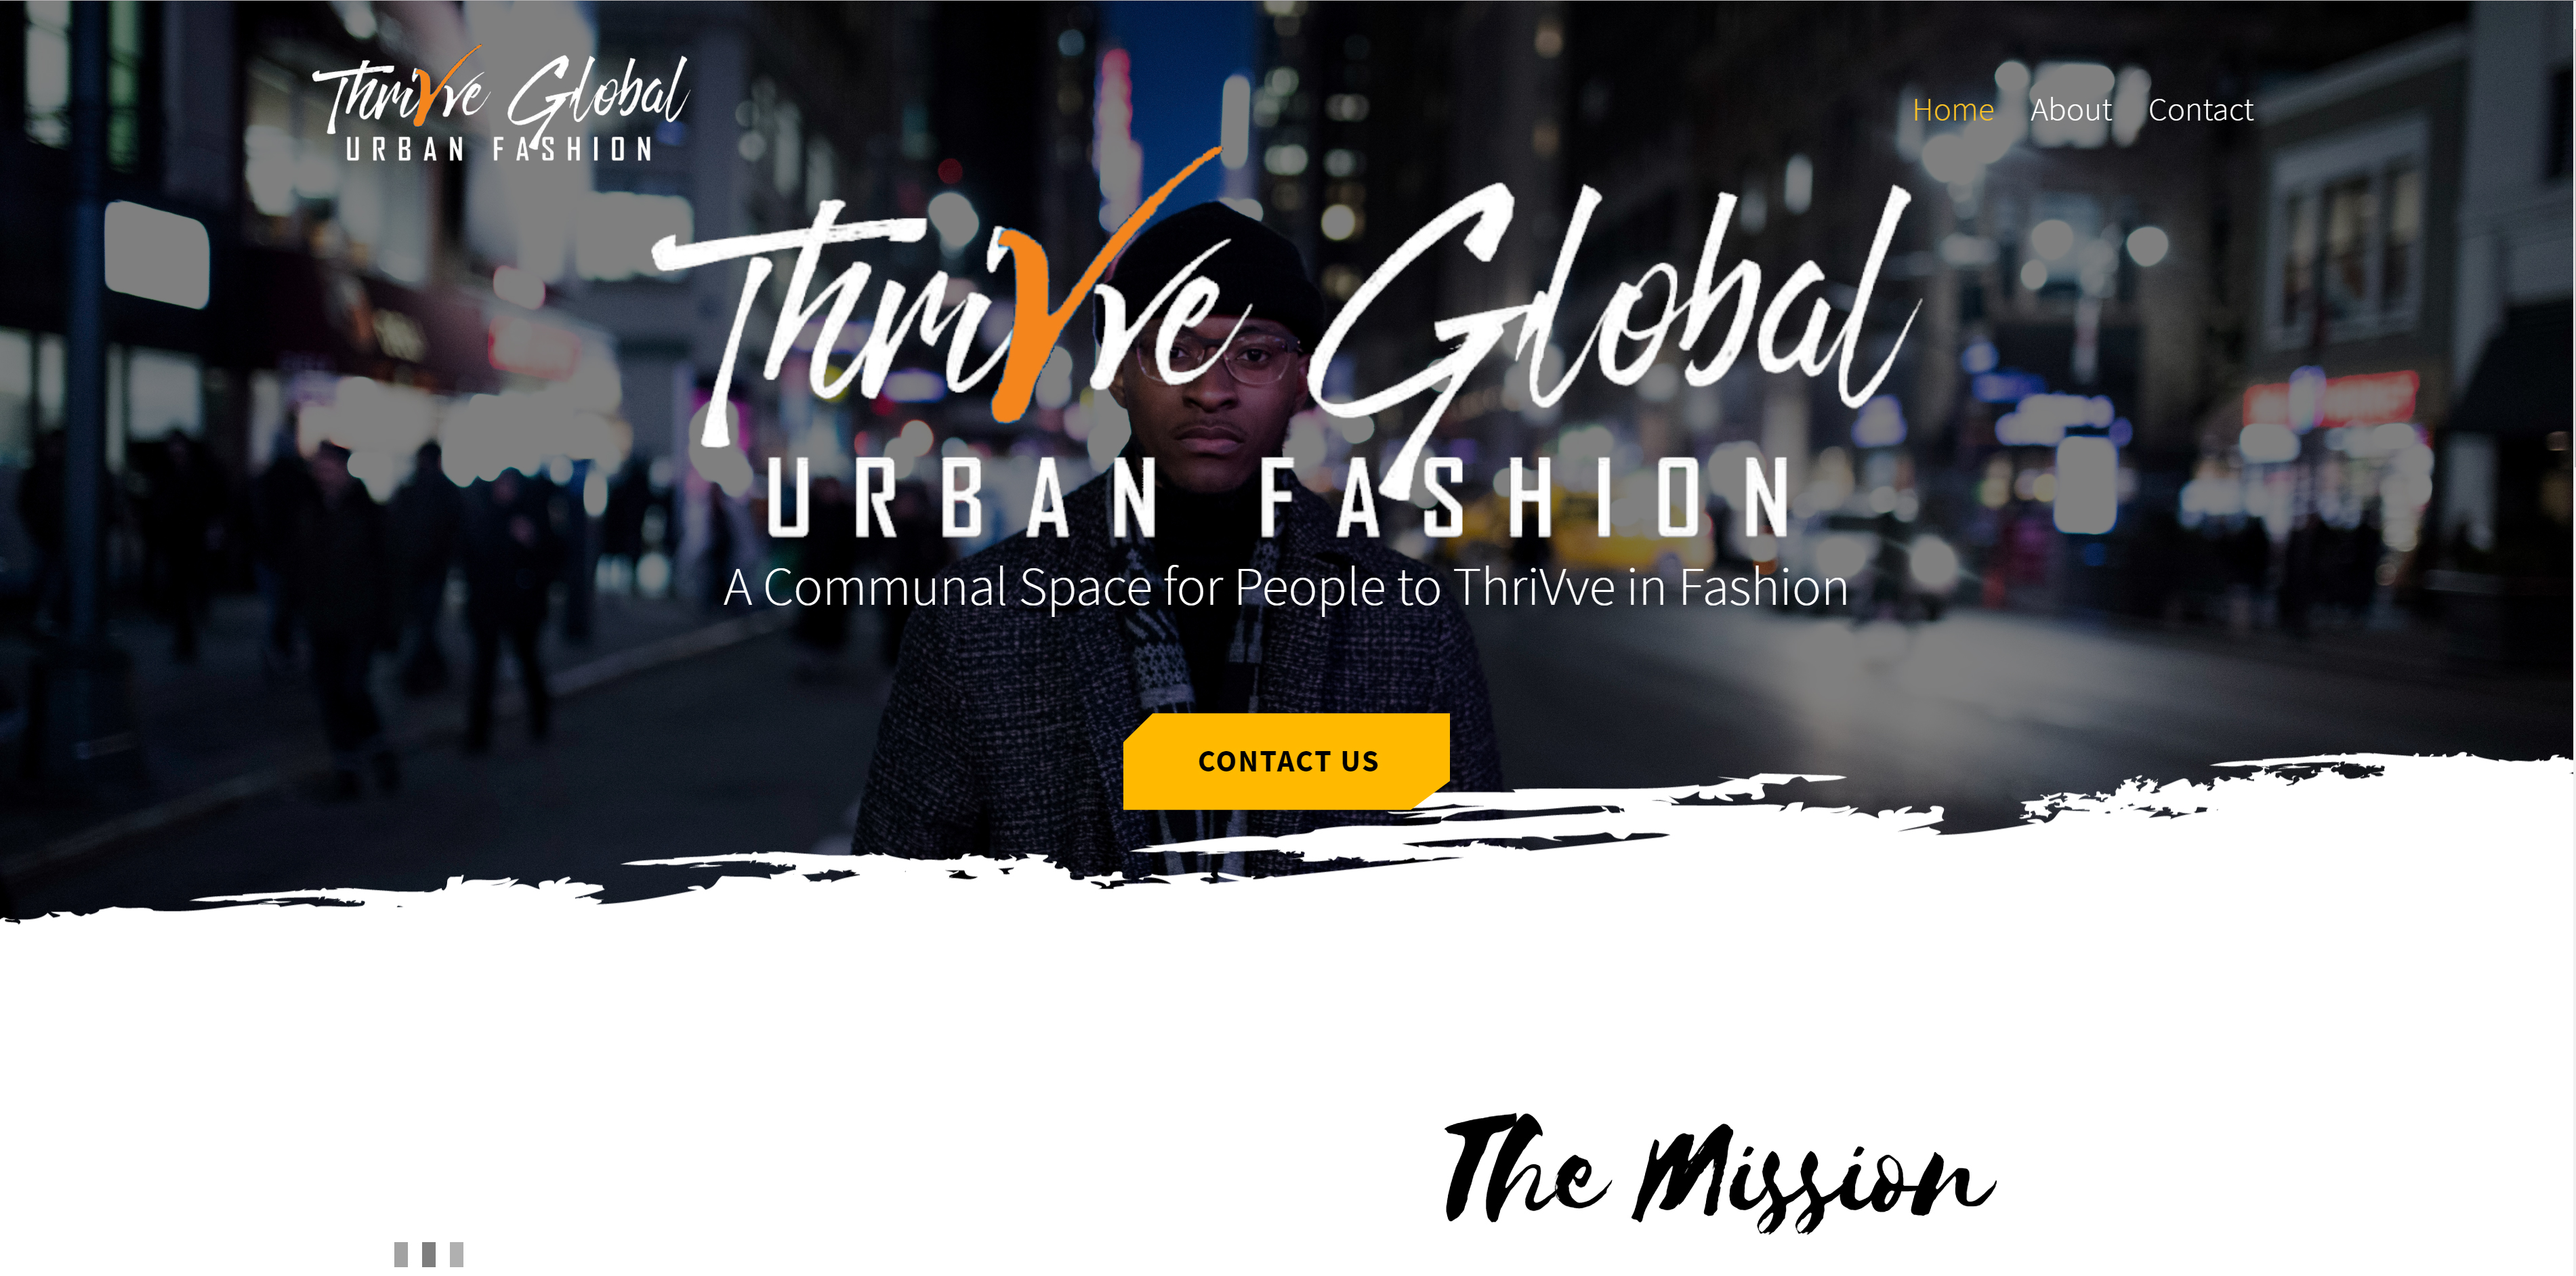 ThriVve Global Urban Fashion